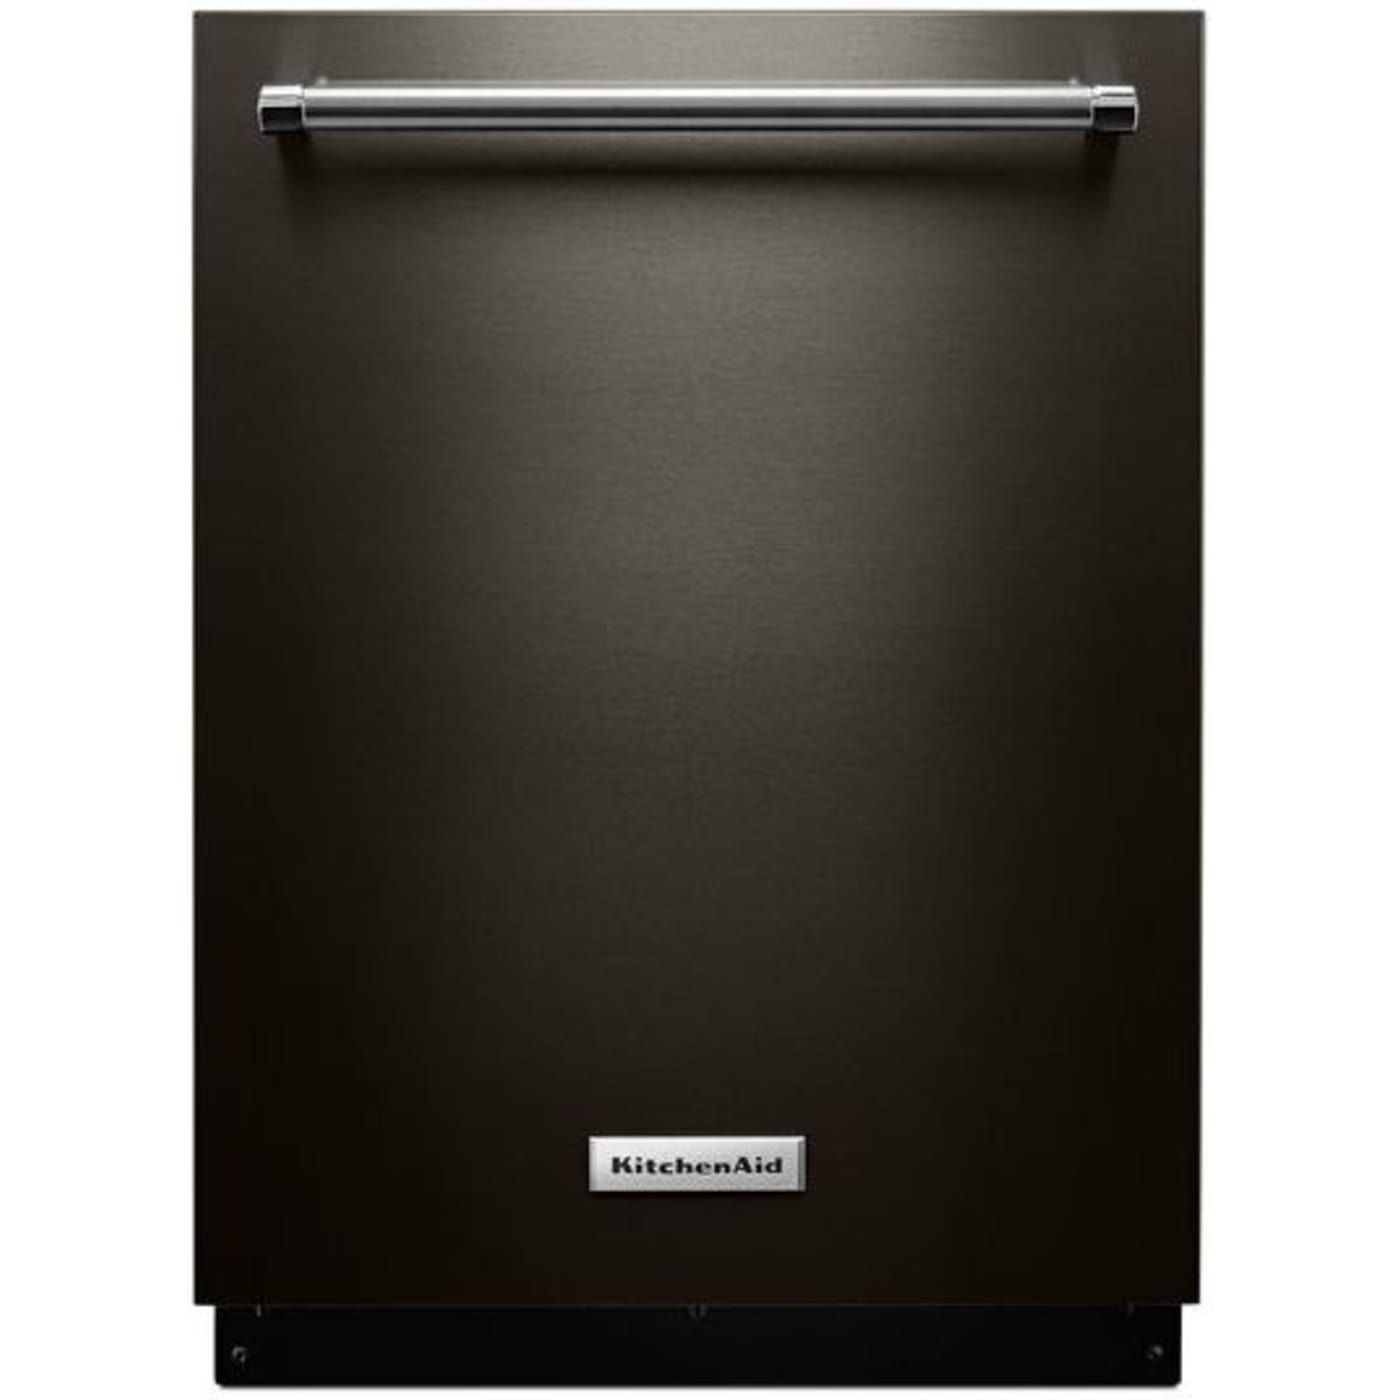 Kdte334gbs by kitchenaid fully integrated dishwashers